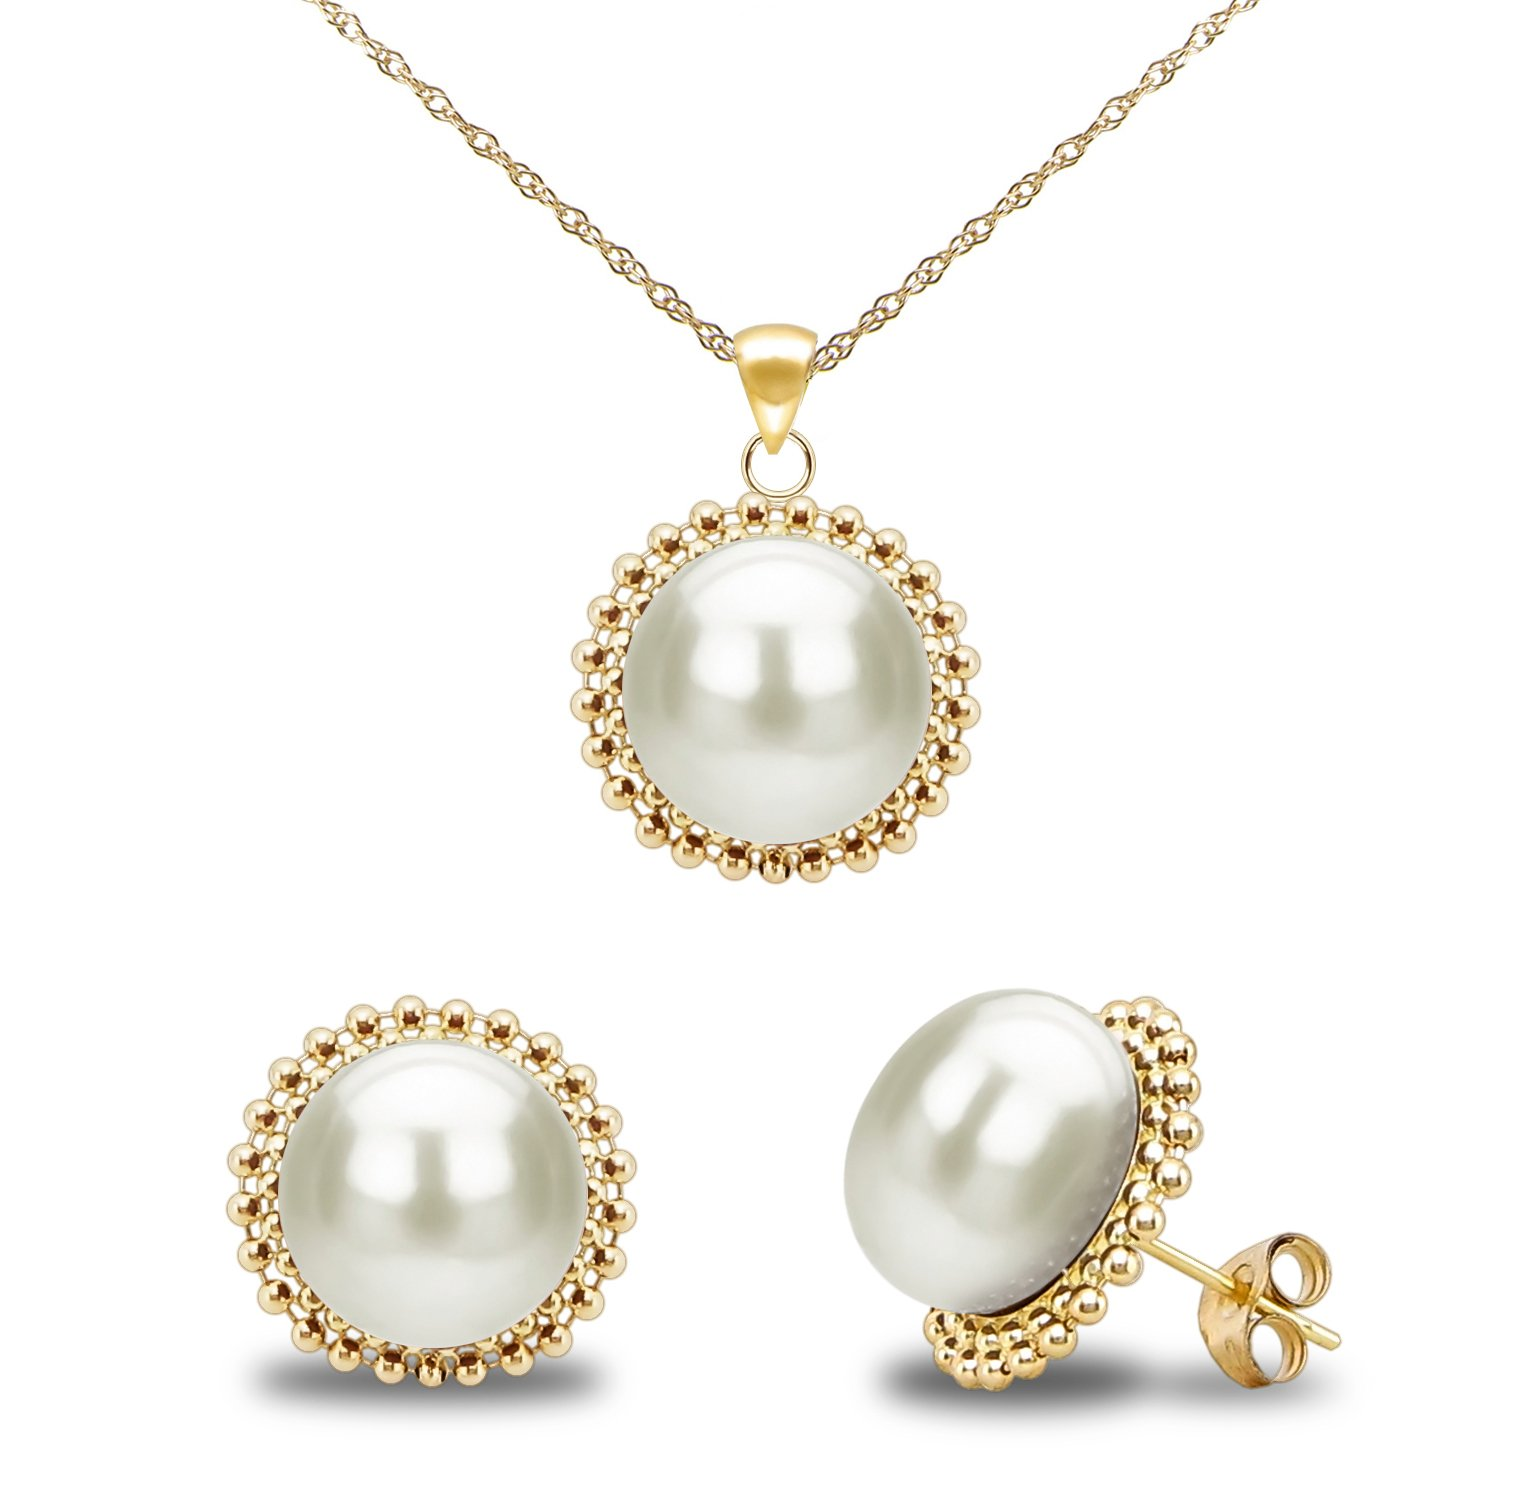 14k Yellow Gold 9-9.5mm White Freshwater Cultured Pearl Beaded Pendant and Stud Earrings Set